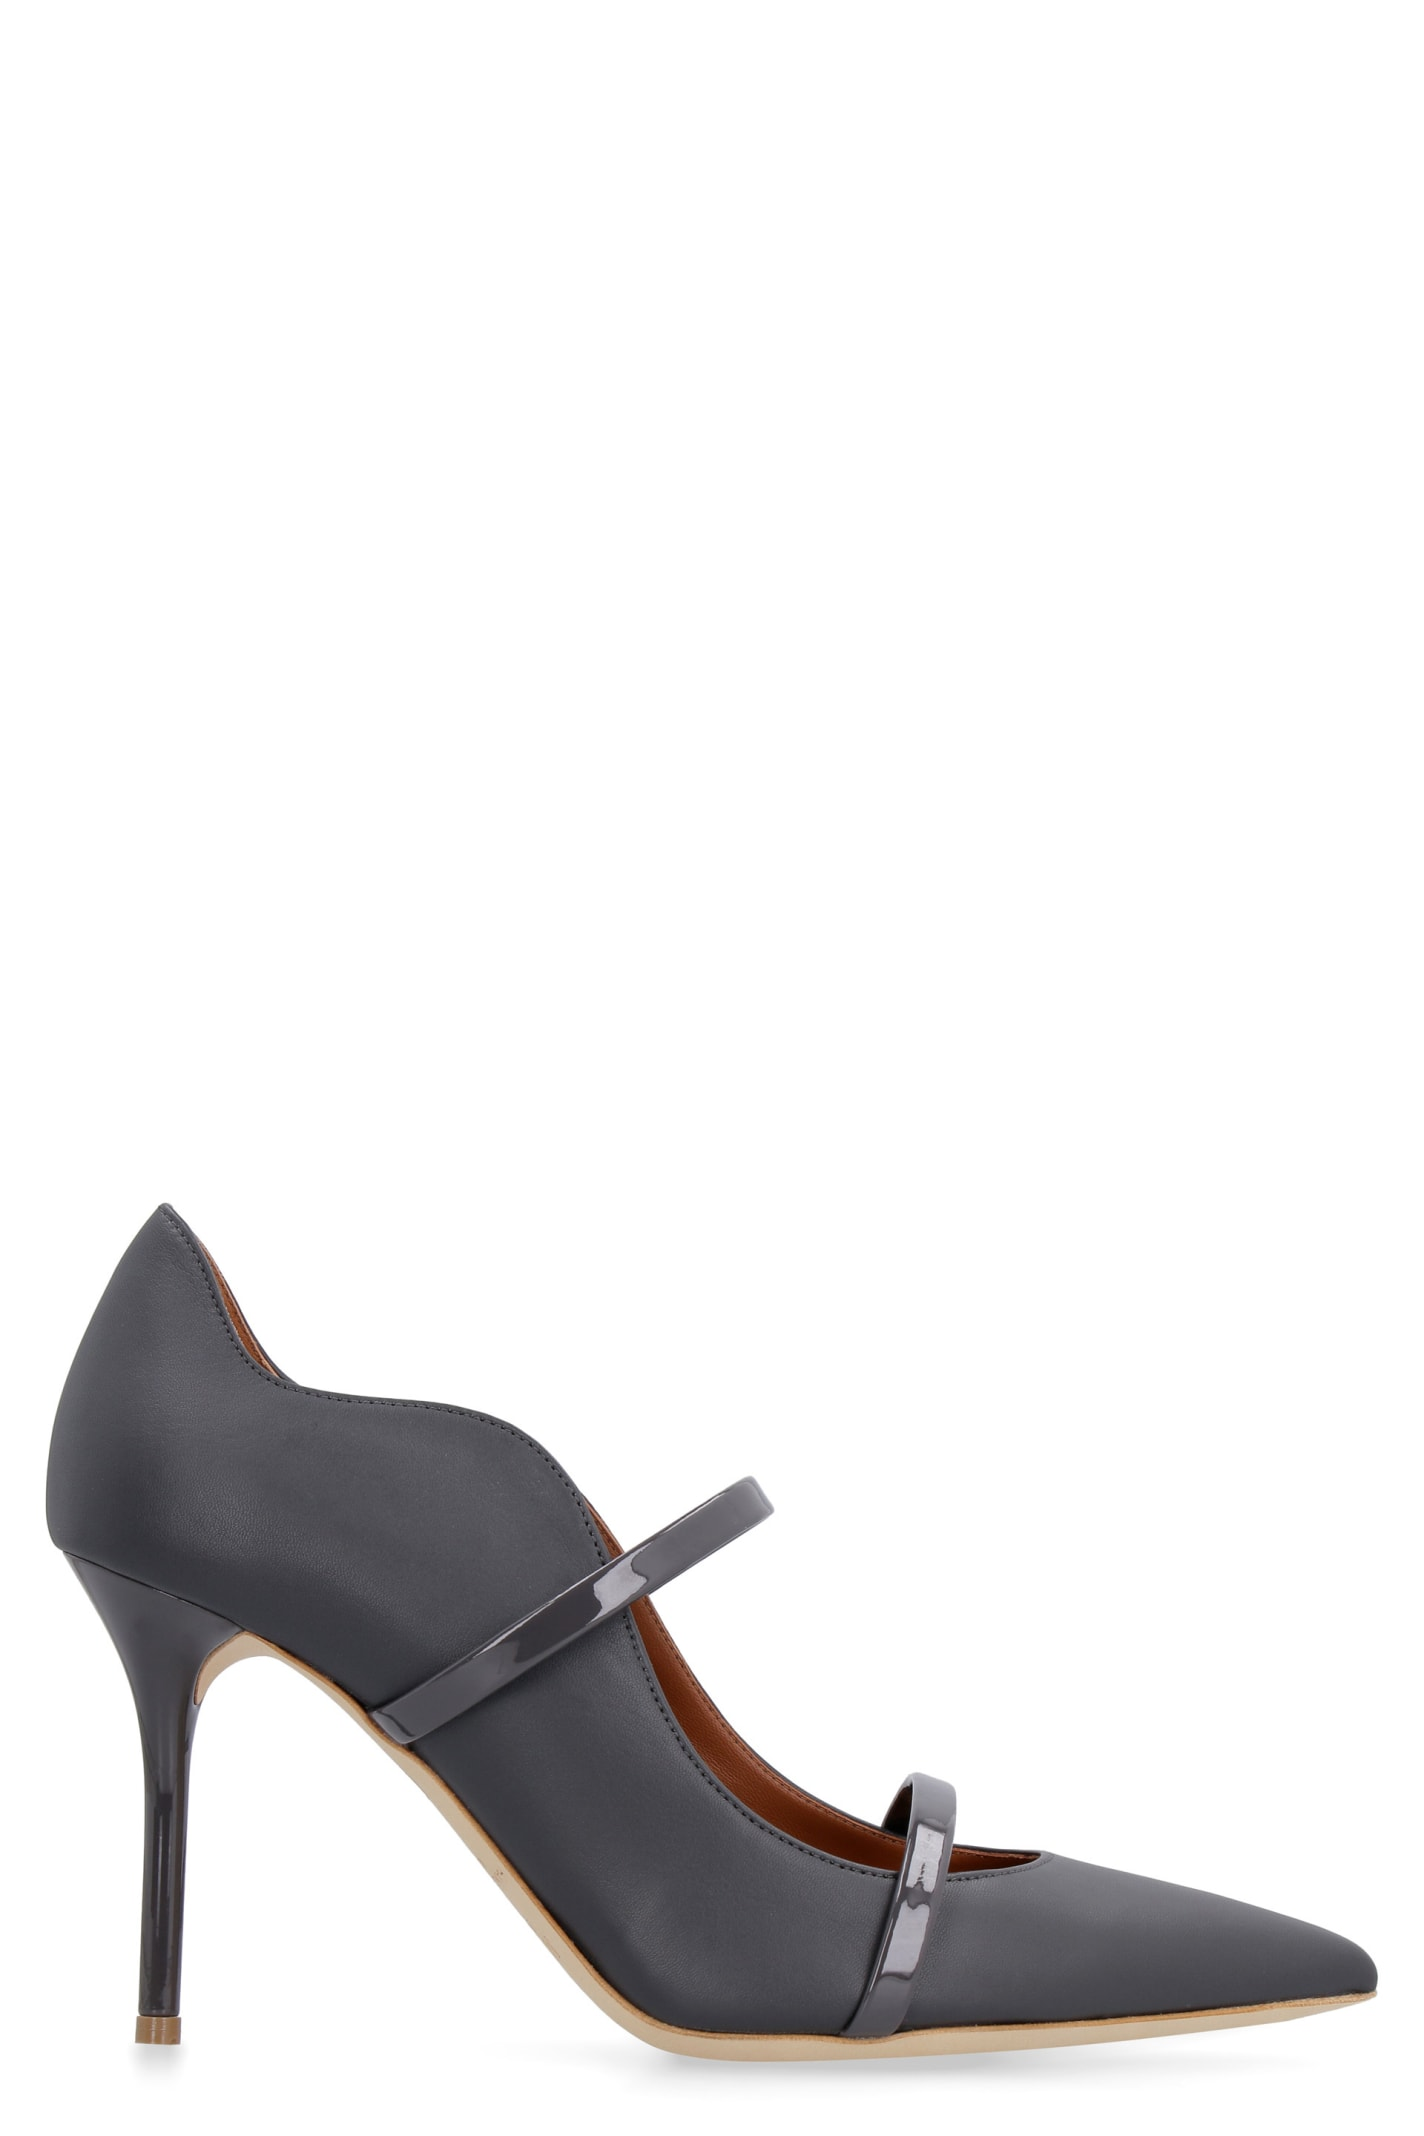 Malone Souliers MAUREEN LEATHER PUMP